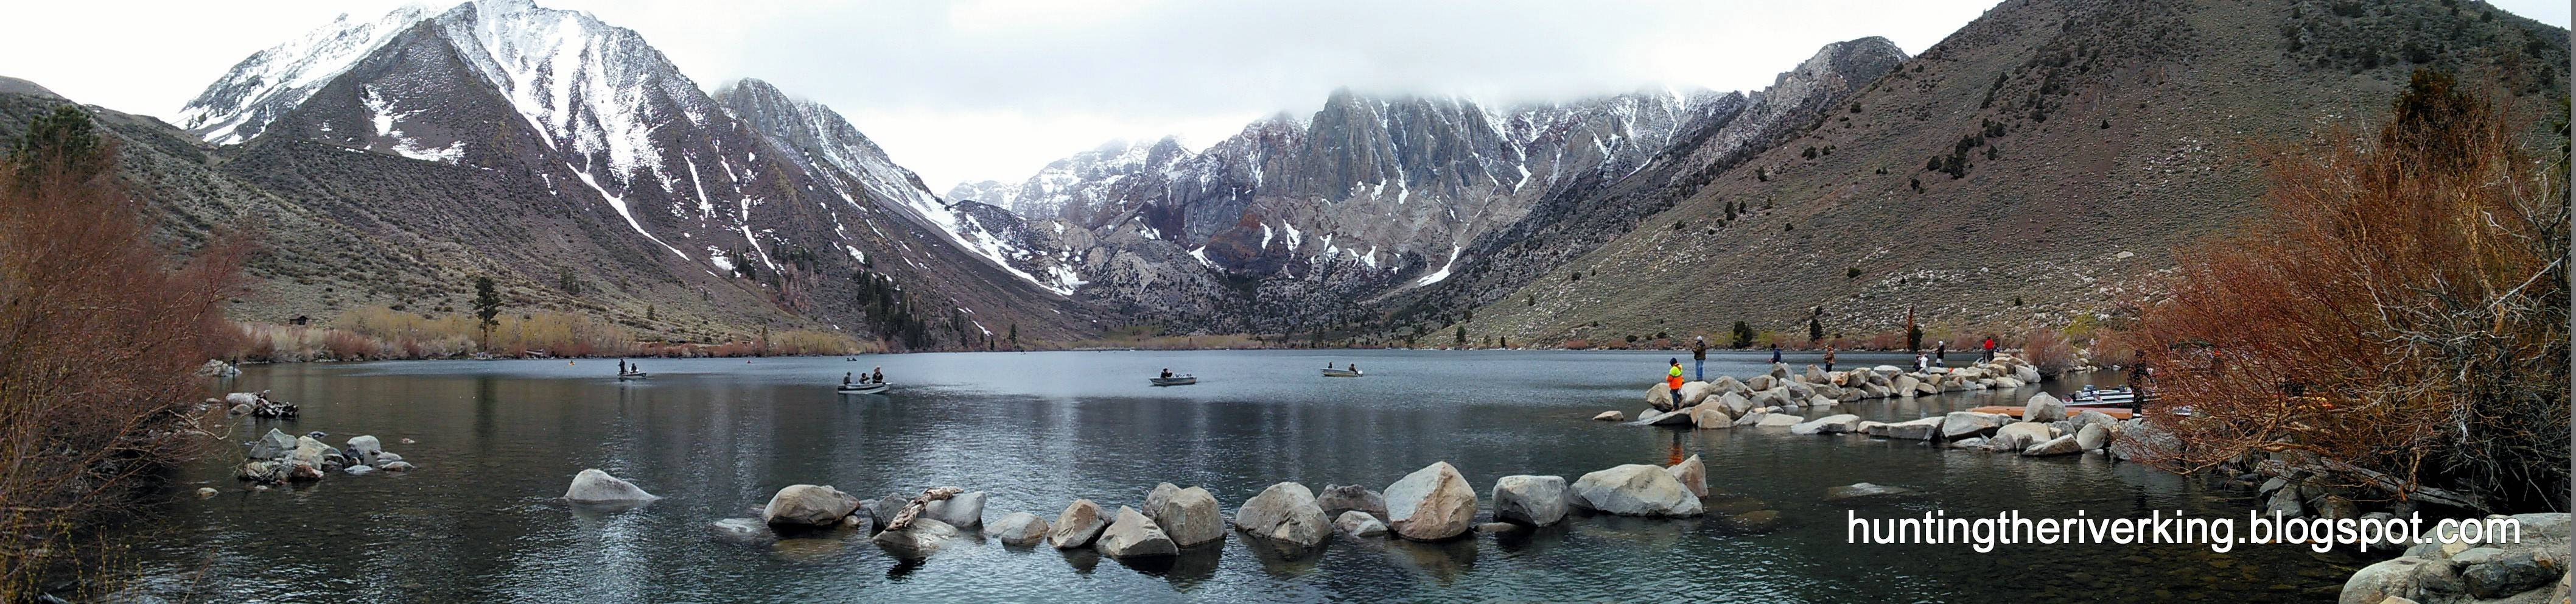 Eastern Sierra Fishing Trip for Opening Weekend